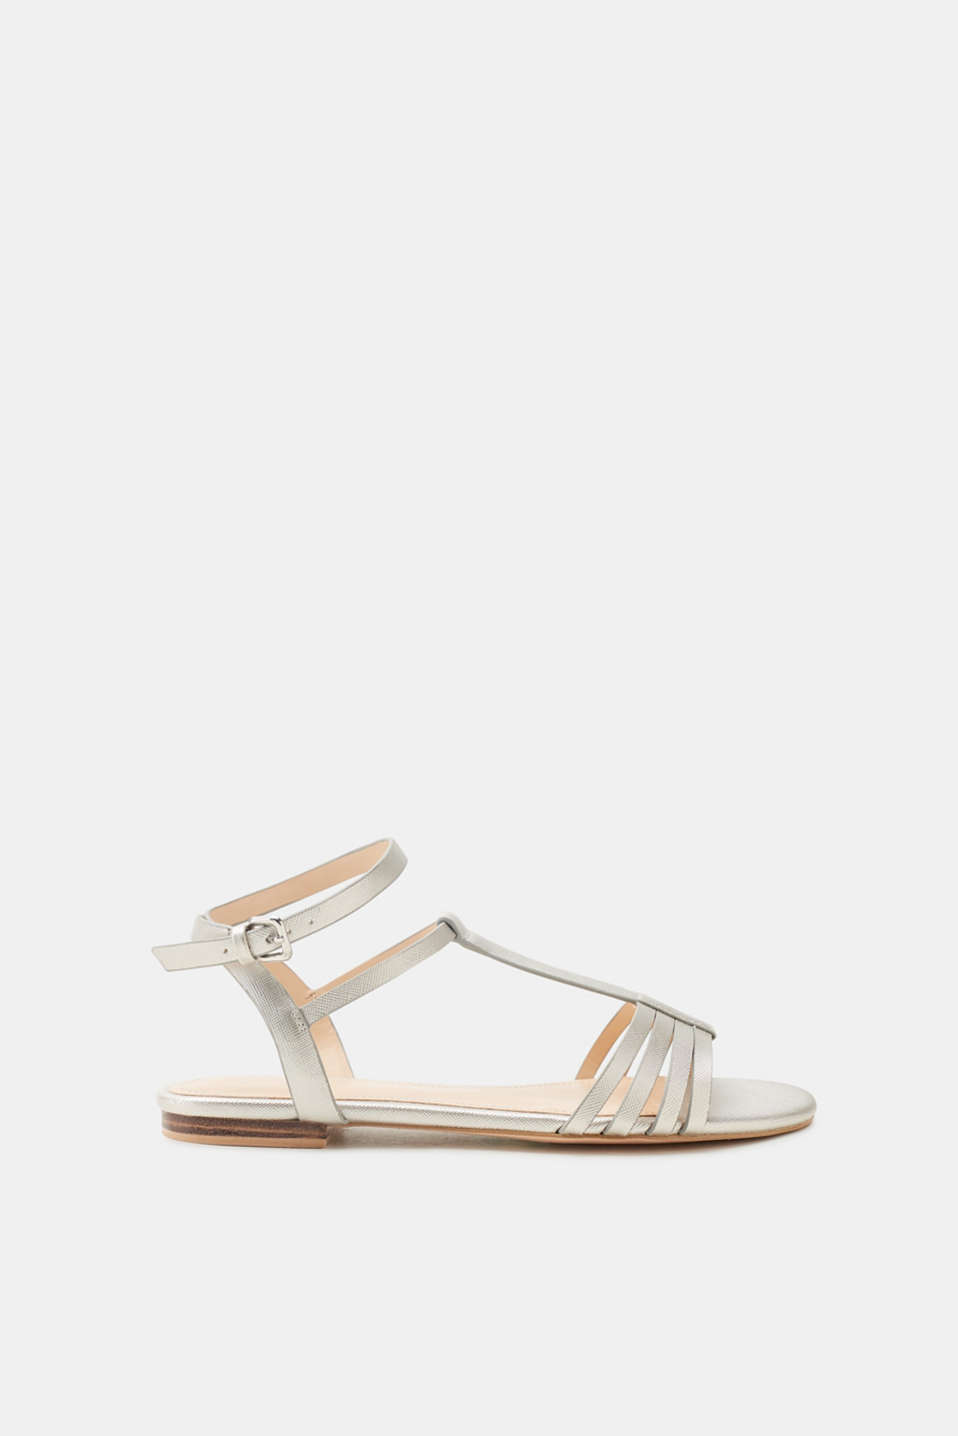 Esprit - Flat sandals in a textured faux leather look